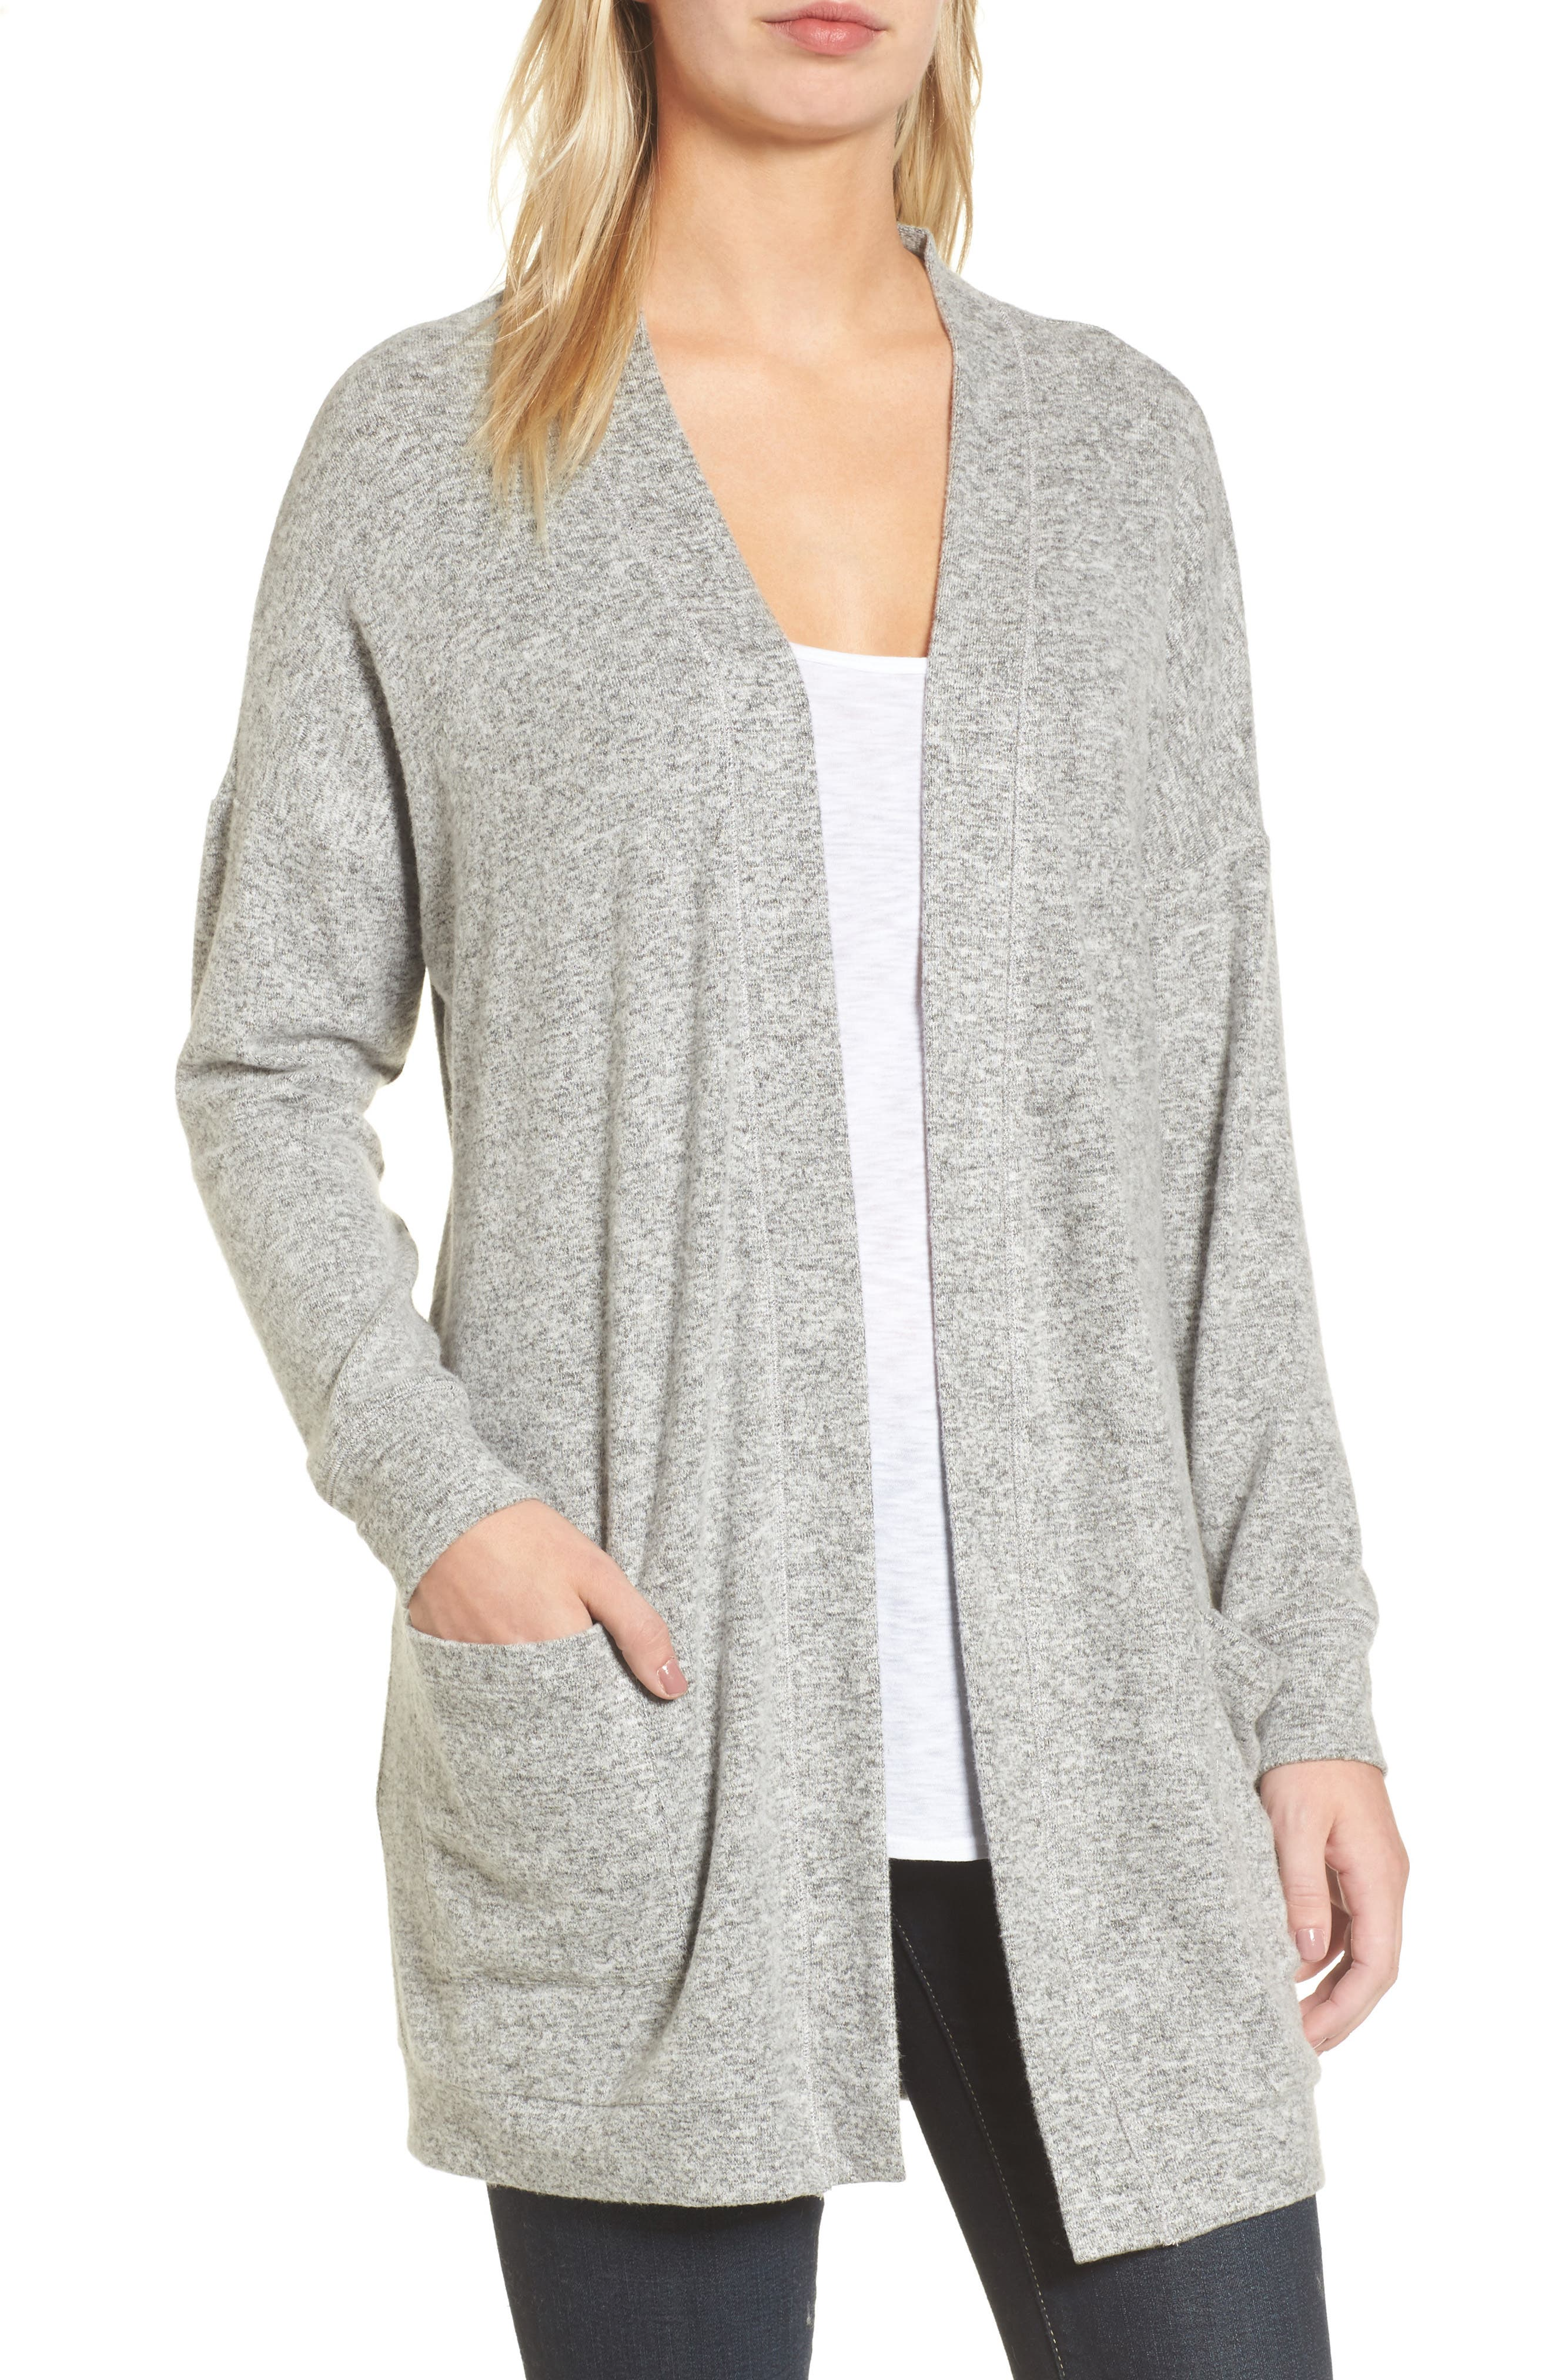 Rib Knit Cardigan,                         Main,                         color, LIGHT HEATHER GREY